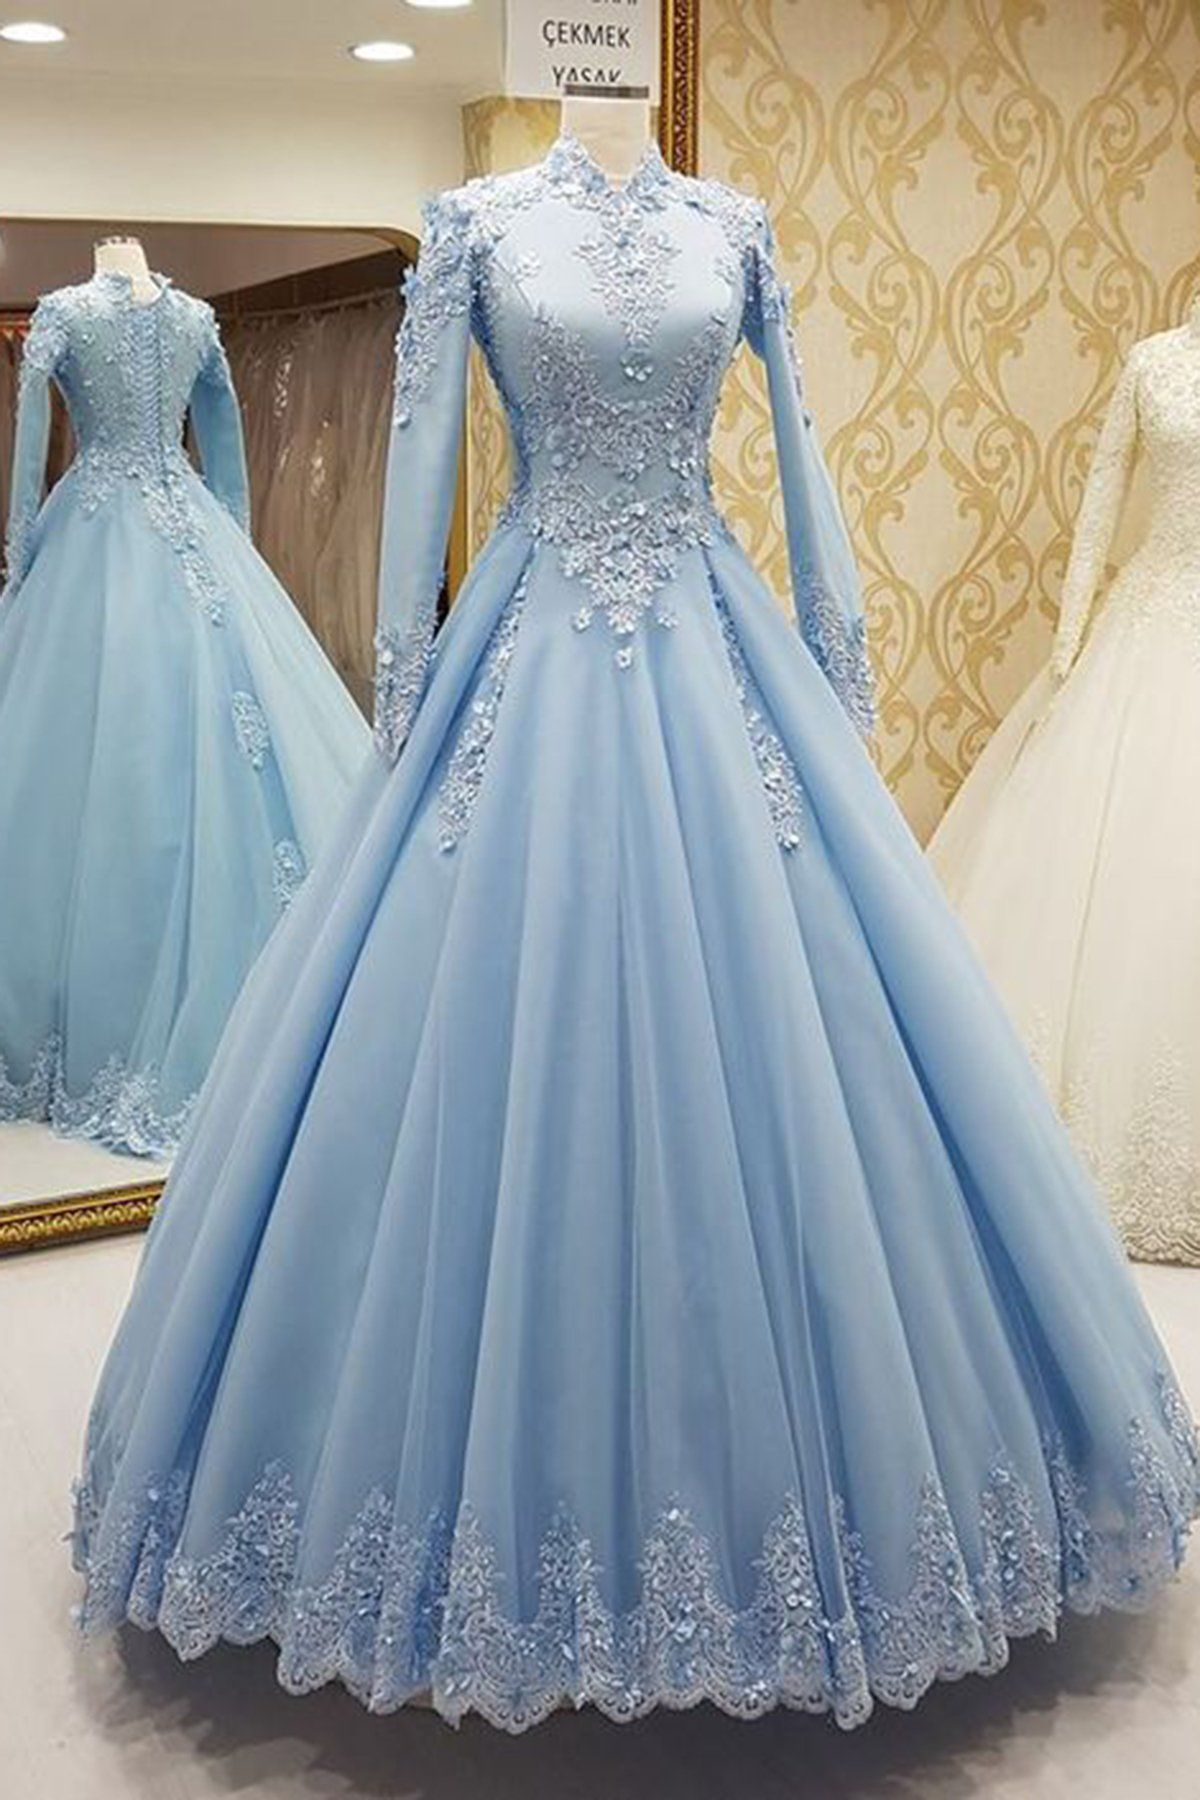 Material Tulle Color Please Refer To Card Sometimes Difference Will Be Existed Kindly Understand Lead Time 15 30days Base On